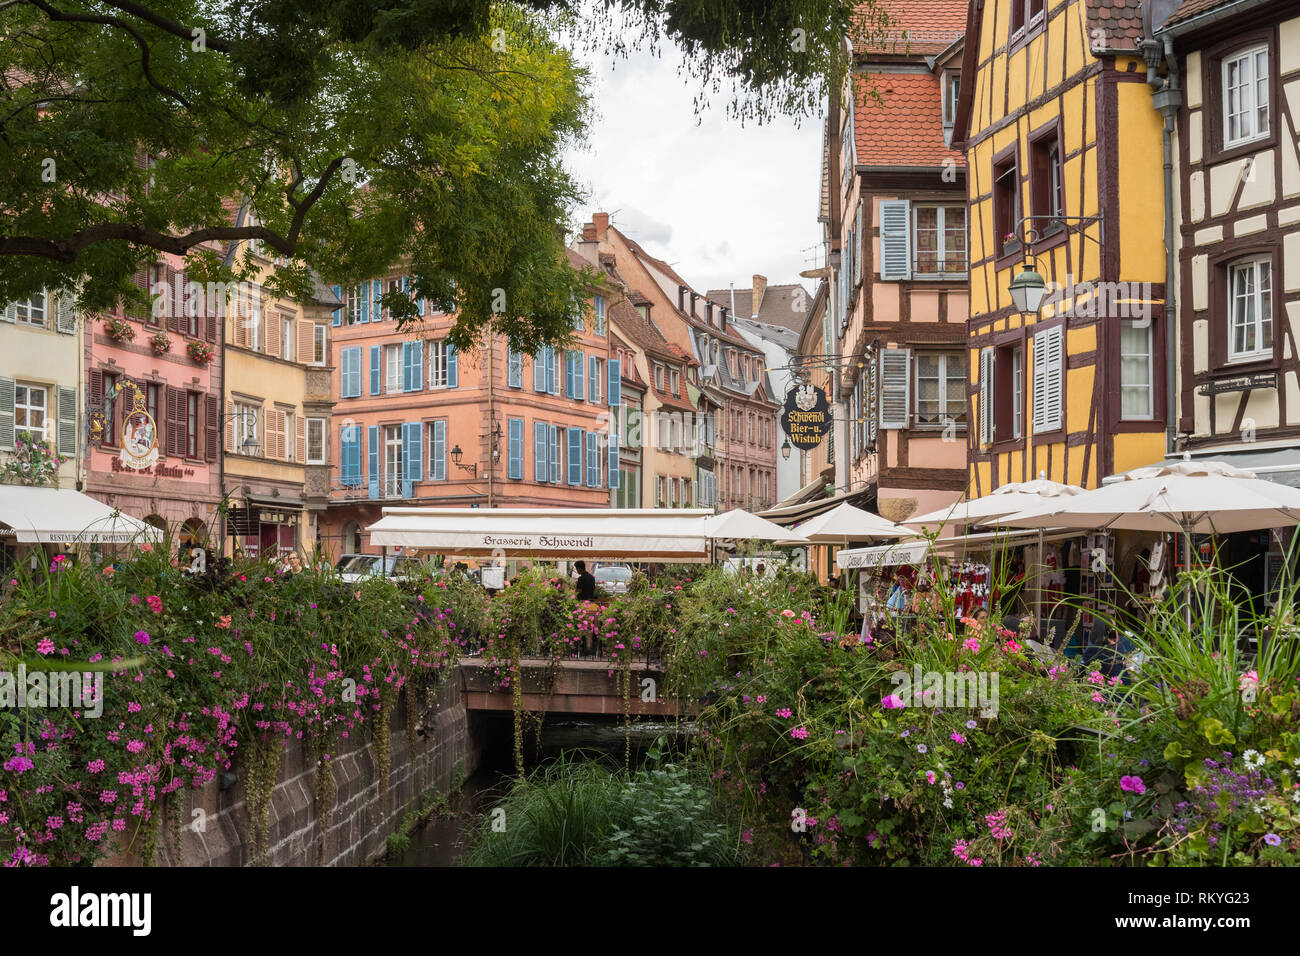 Colmar Old Town buildings and street cafes in summer, Colmar, Alsace, France, Europe - Stock Image